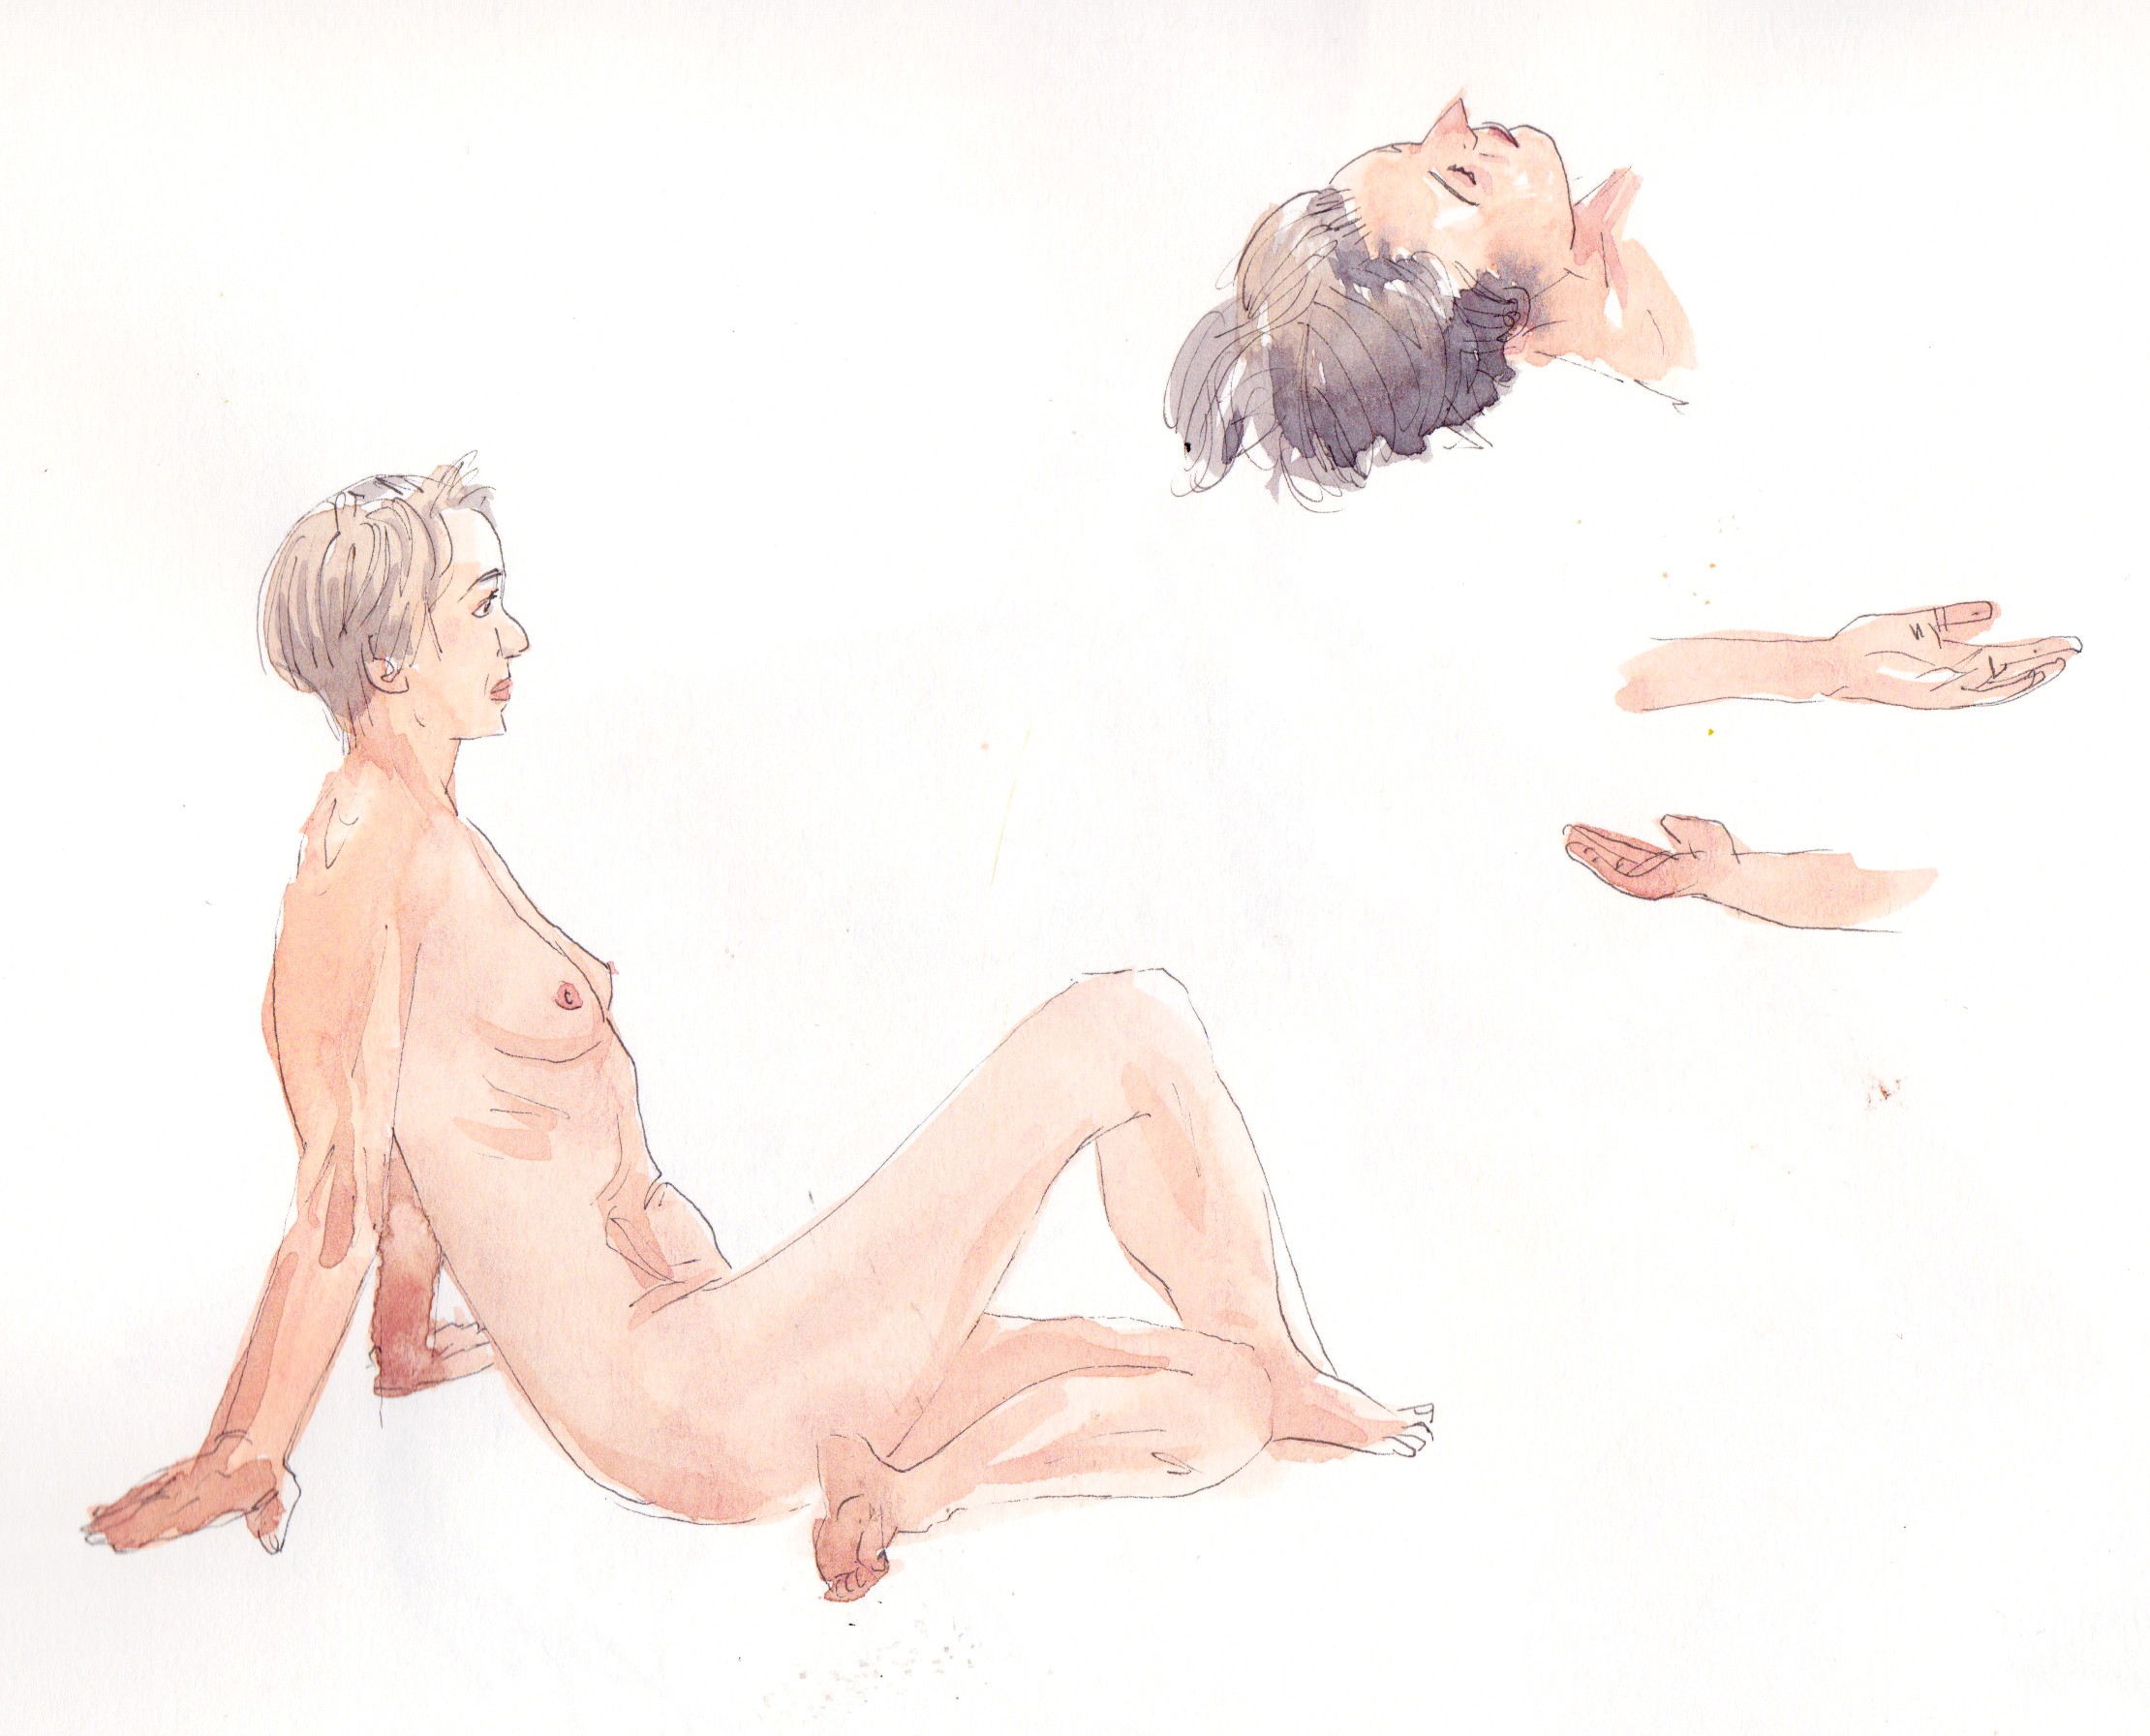 lifedrawing 19